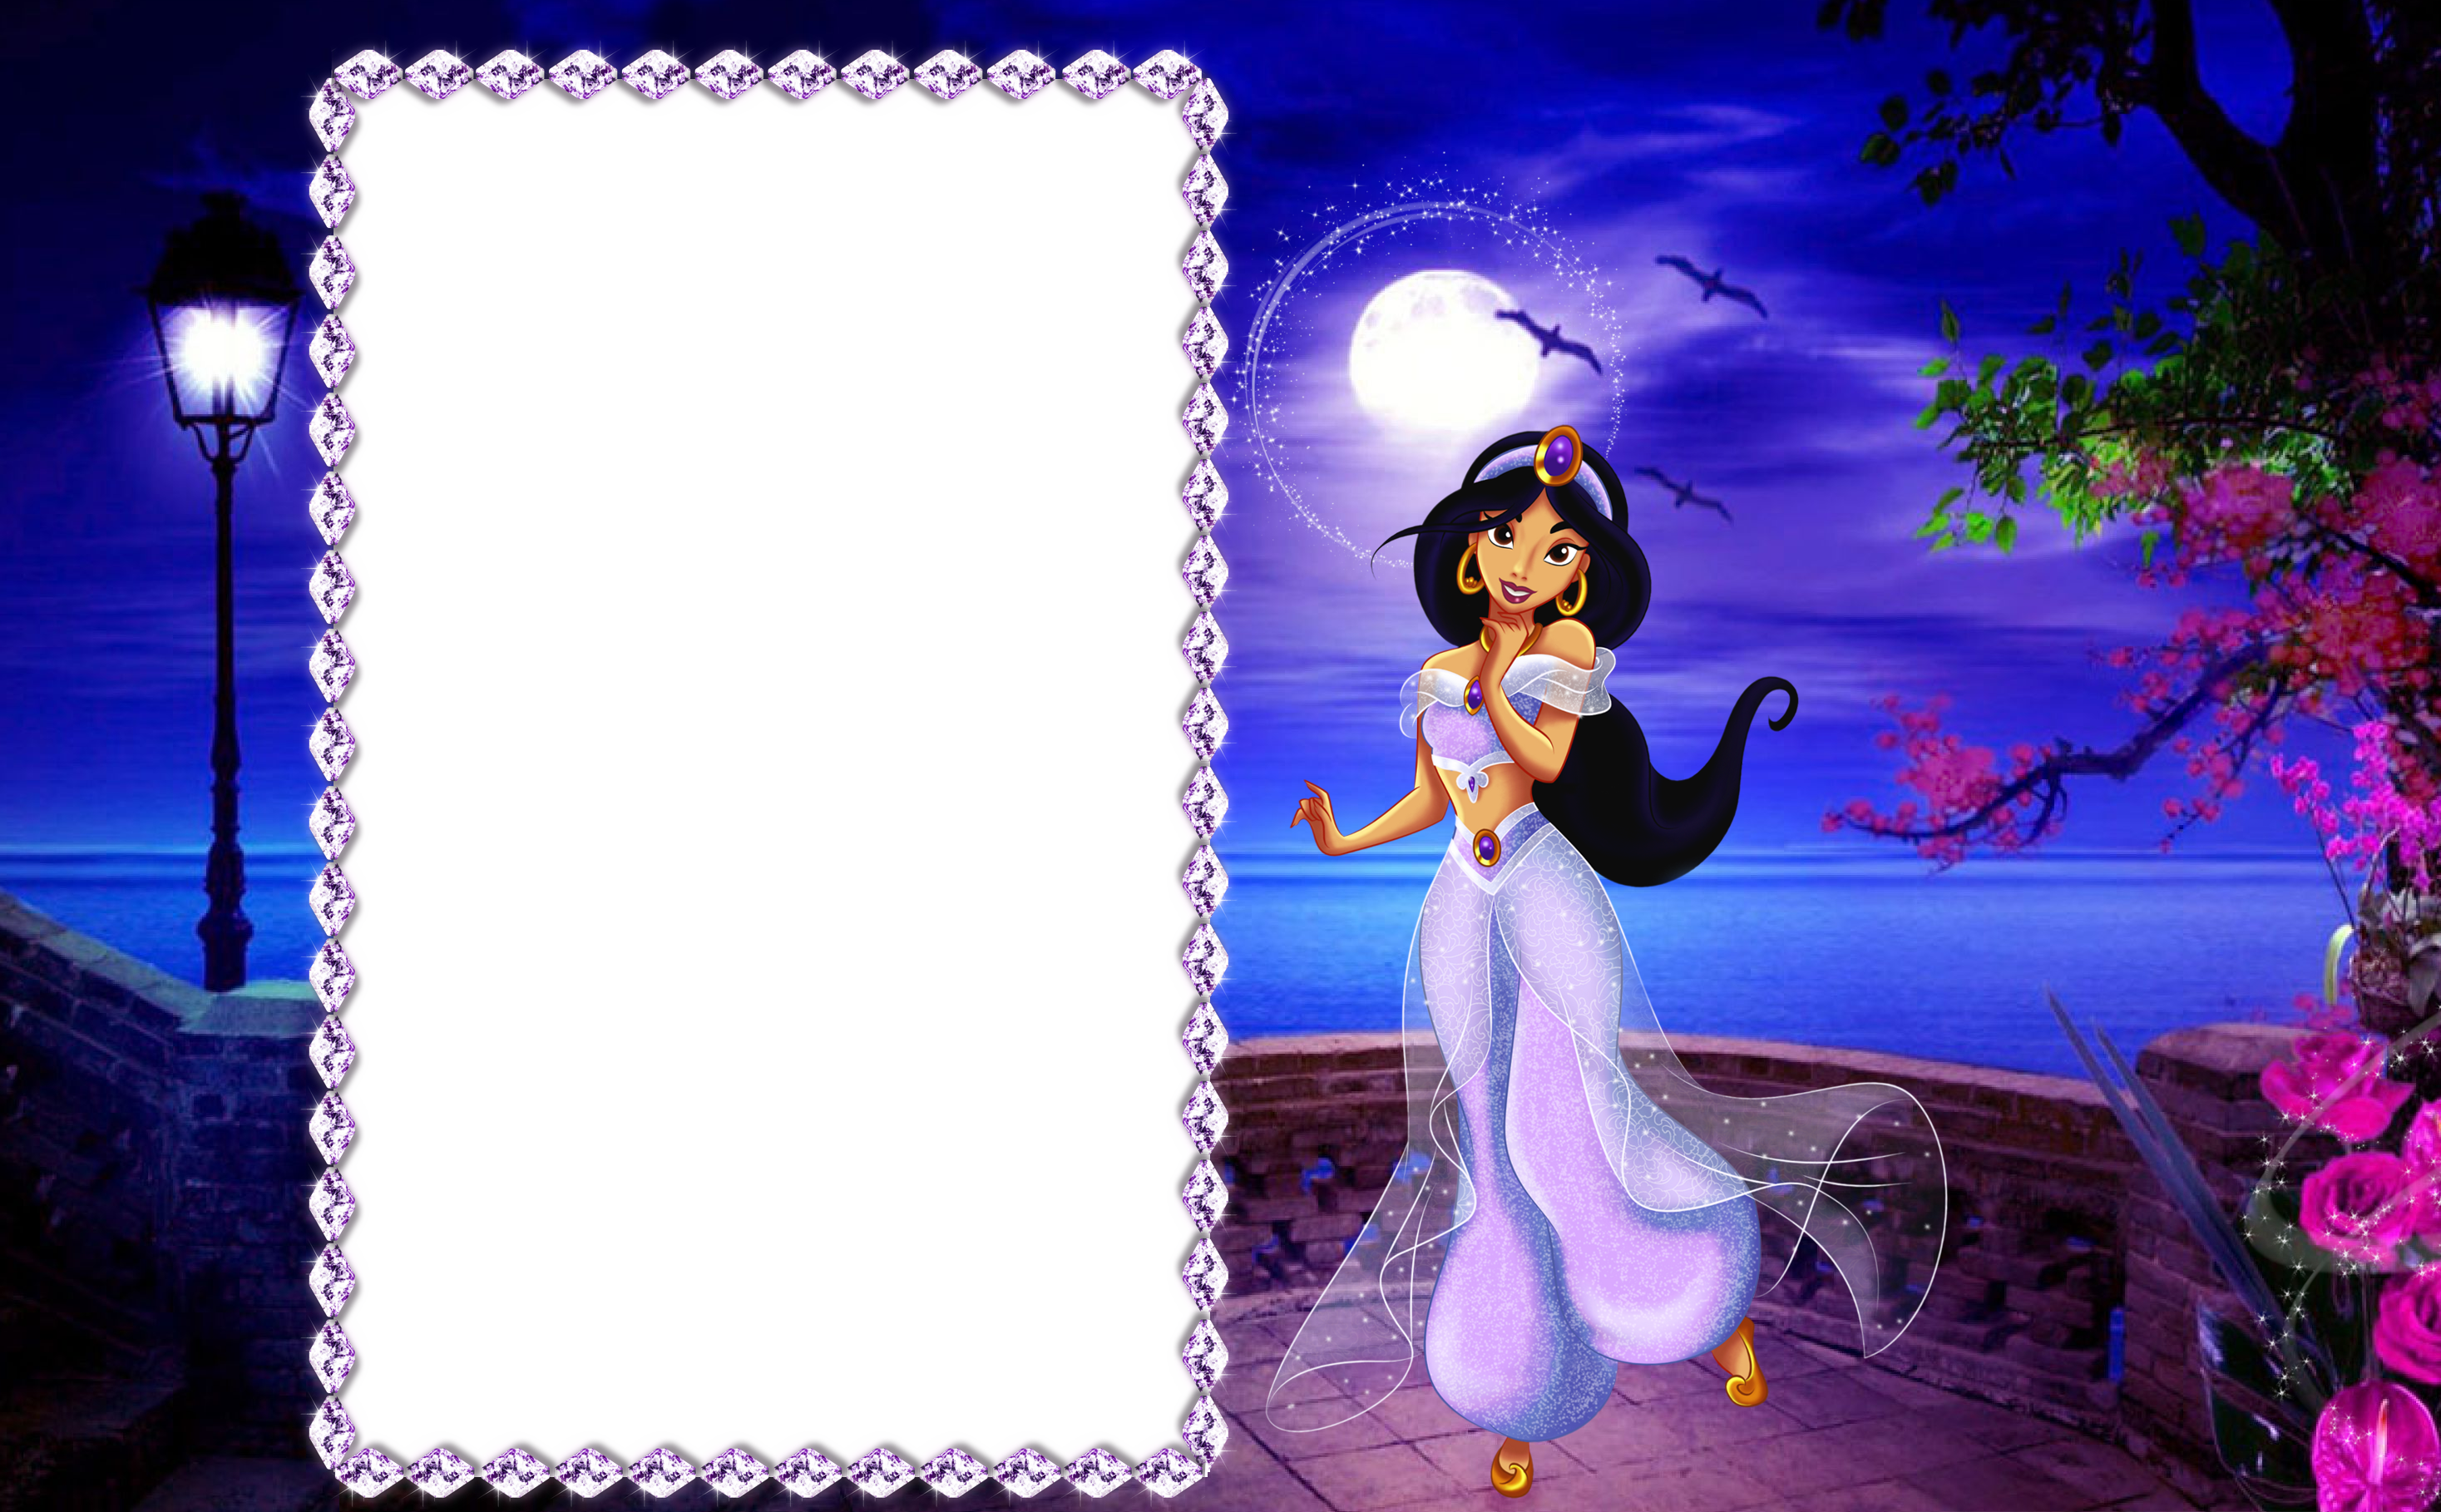 Halloween clipart night. Princess jasmine kids png